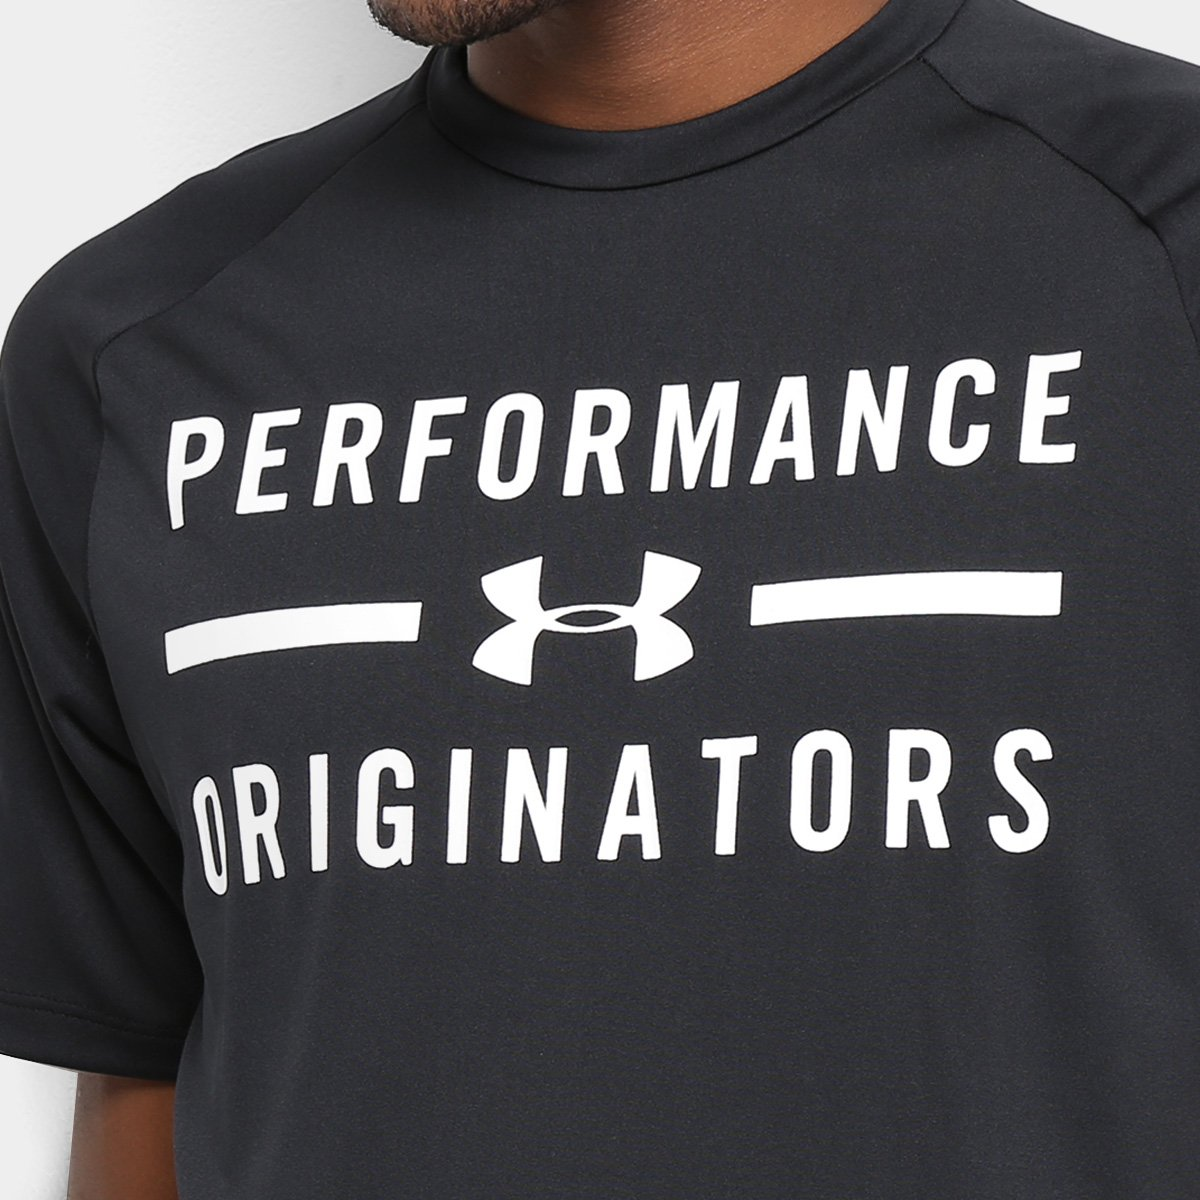 Camiseta Under Armour Masculina Tech Originators Preta